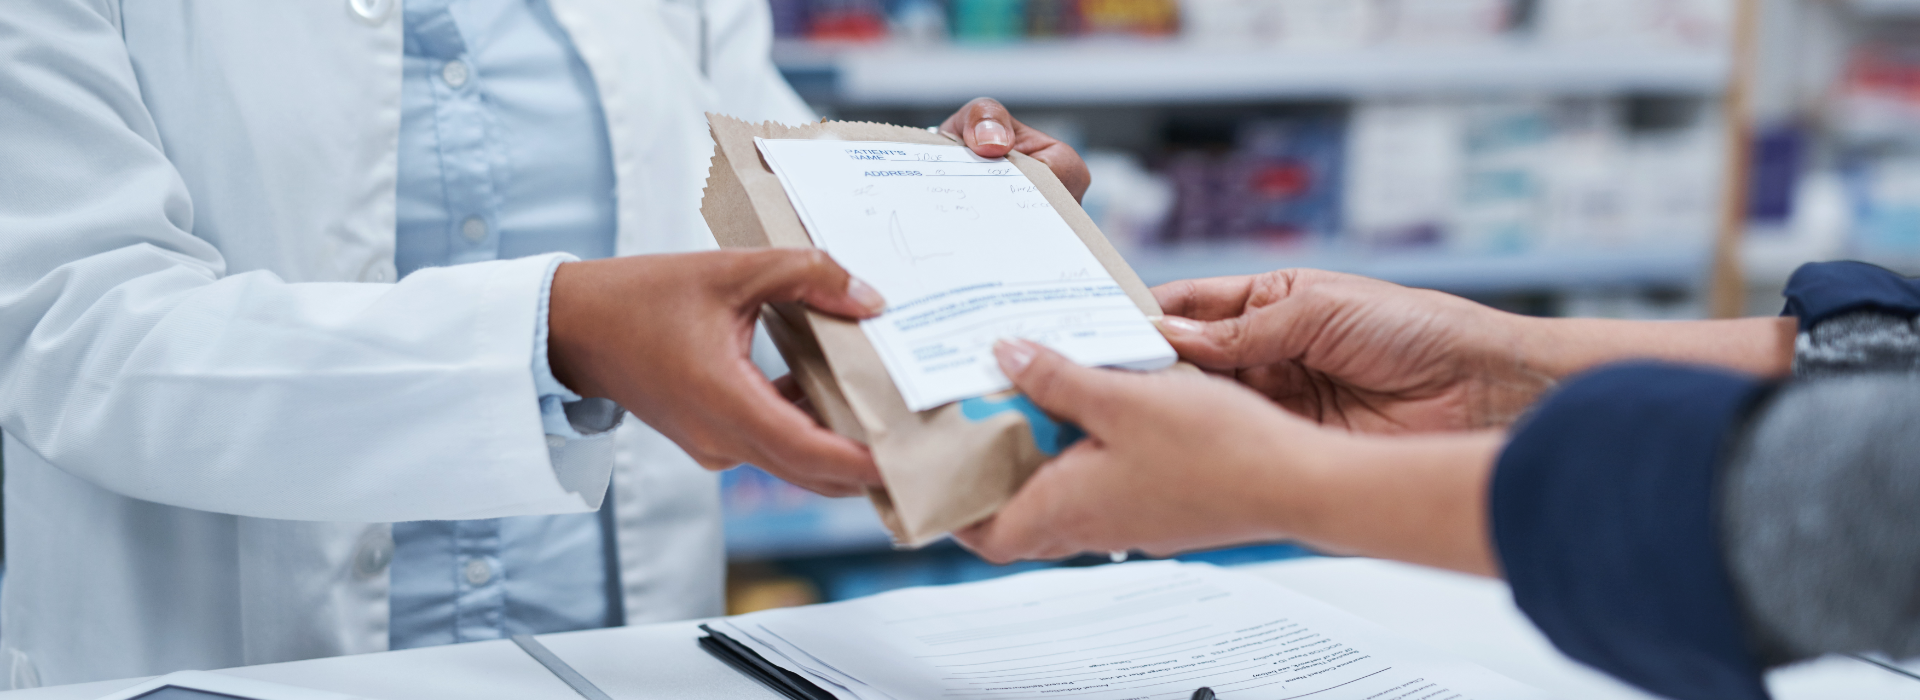 Pharmacist hands prescription pharmaceuticals to patient.